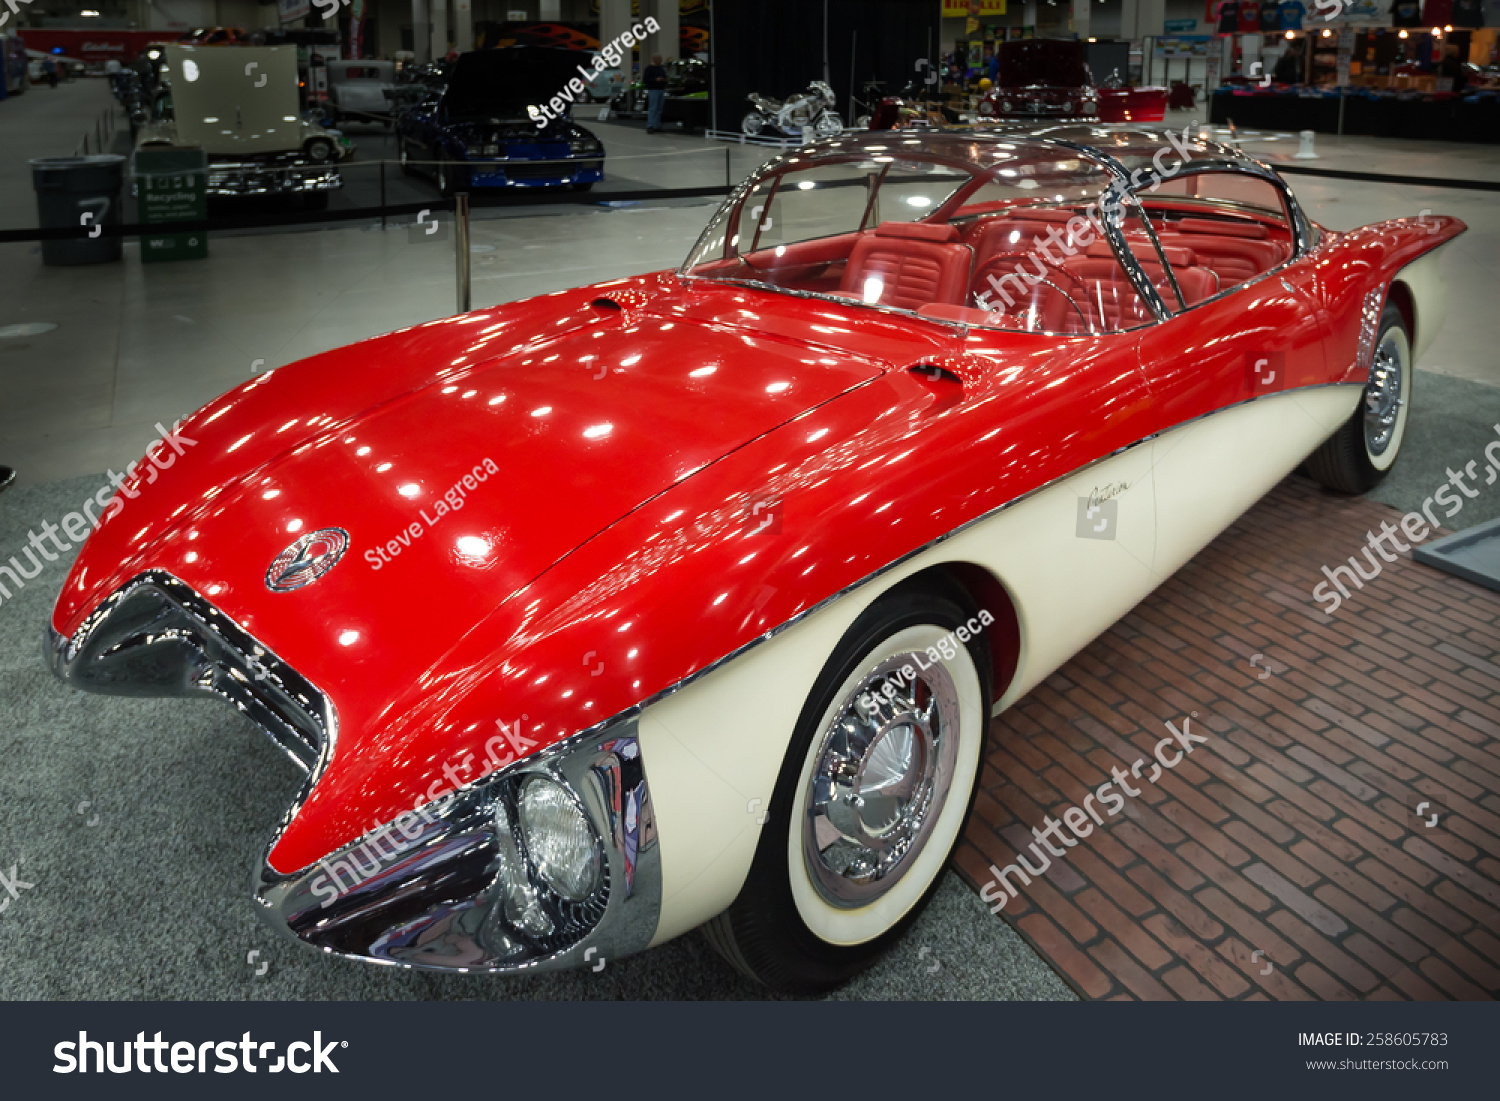 http://image.shutterstock.com/z/stock-photo-detroit-mi-usa-march-a-buick-centurion-xp-concept-car-on-display-at-the-258605783.jpg